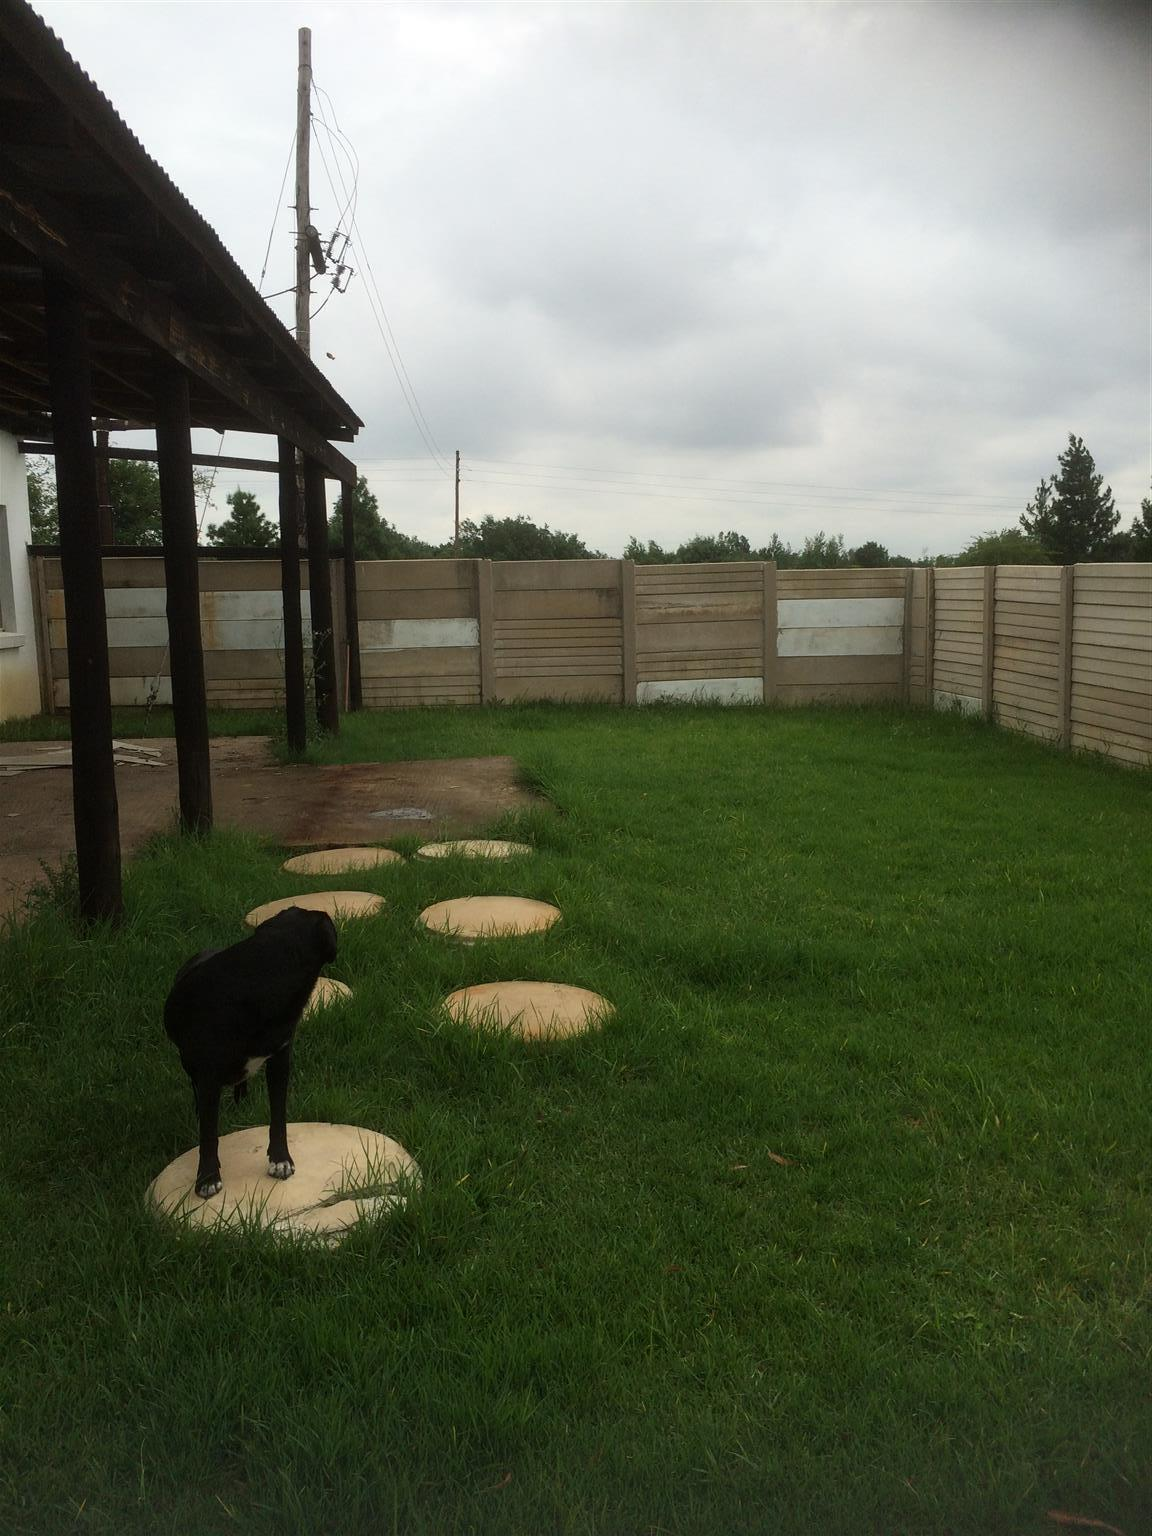 Plot for sale, Kromdraai, Nooitgedacht (near Highveld Steel)